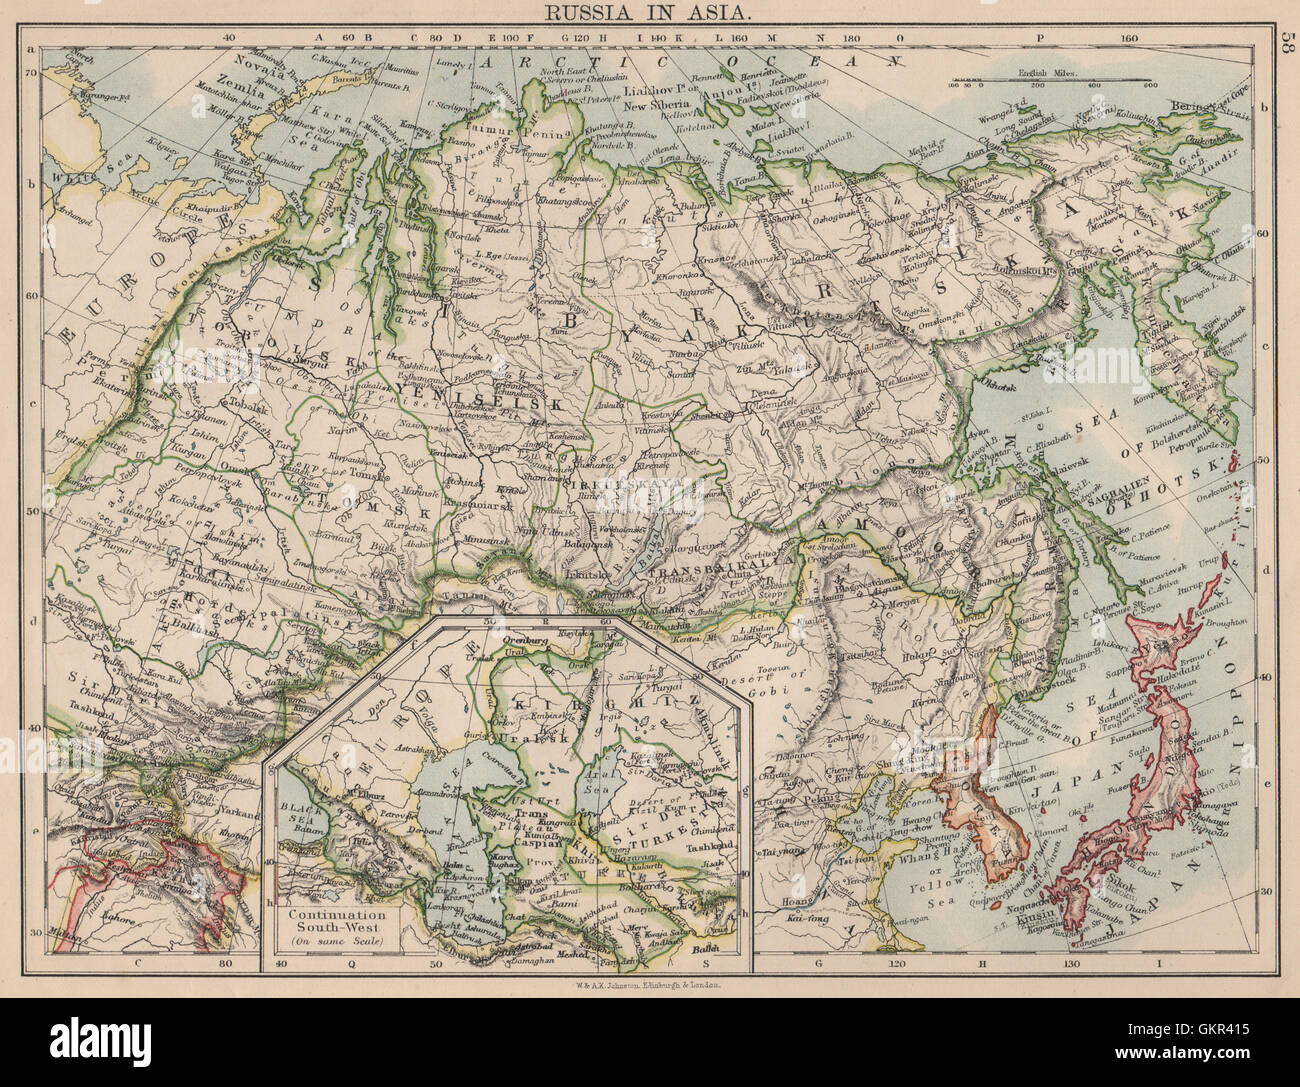 RUSSIA IN ASIA. Shows Trans-Siberian railway under ... on northern europe map, bosnia map, south america map, baikal amur mainline, wales map, st thomas map, arctic ocean map, trans-siberian railway panorama, west siberian railway, brazil map, republic of georgia map, india map, orient express, cyprus map, central asia map, south africa map, central europe map, saint petersburg, ural mountains map, west africa map, greenland map, moscow map, caribbean cruise map, caucasus mountains map, russia map,